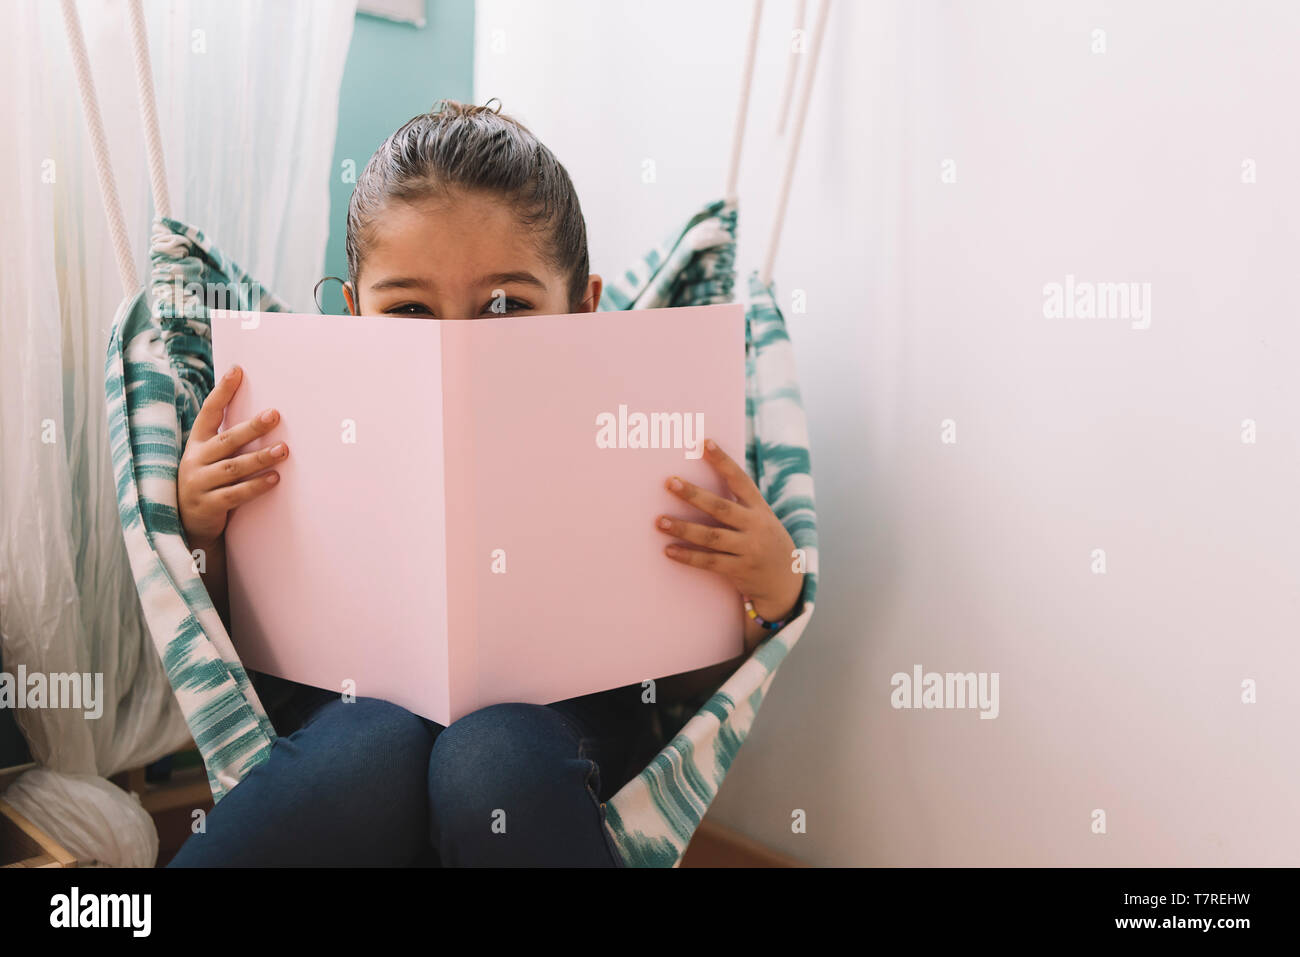 sweet happy little girl reading a book in her room near the window, funny lovely child having fun in kids room, copy space for text Stock Photo